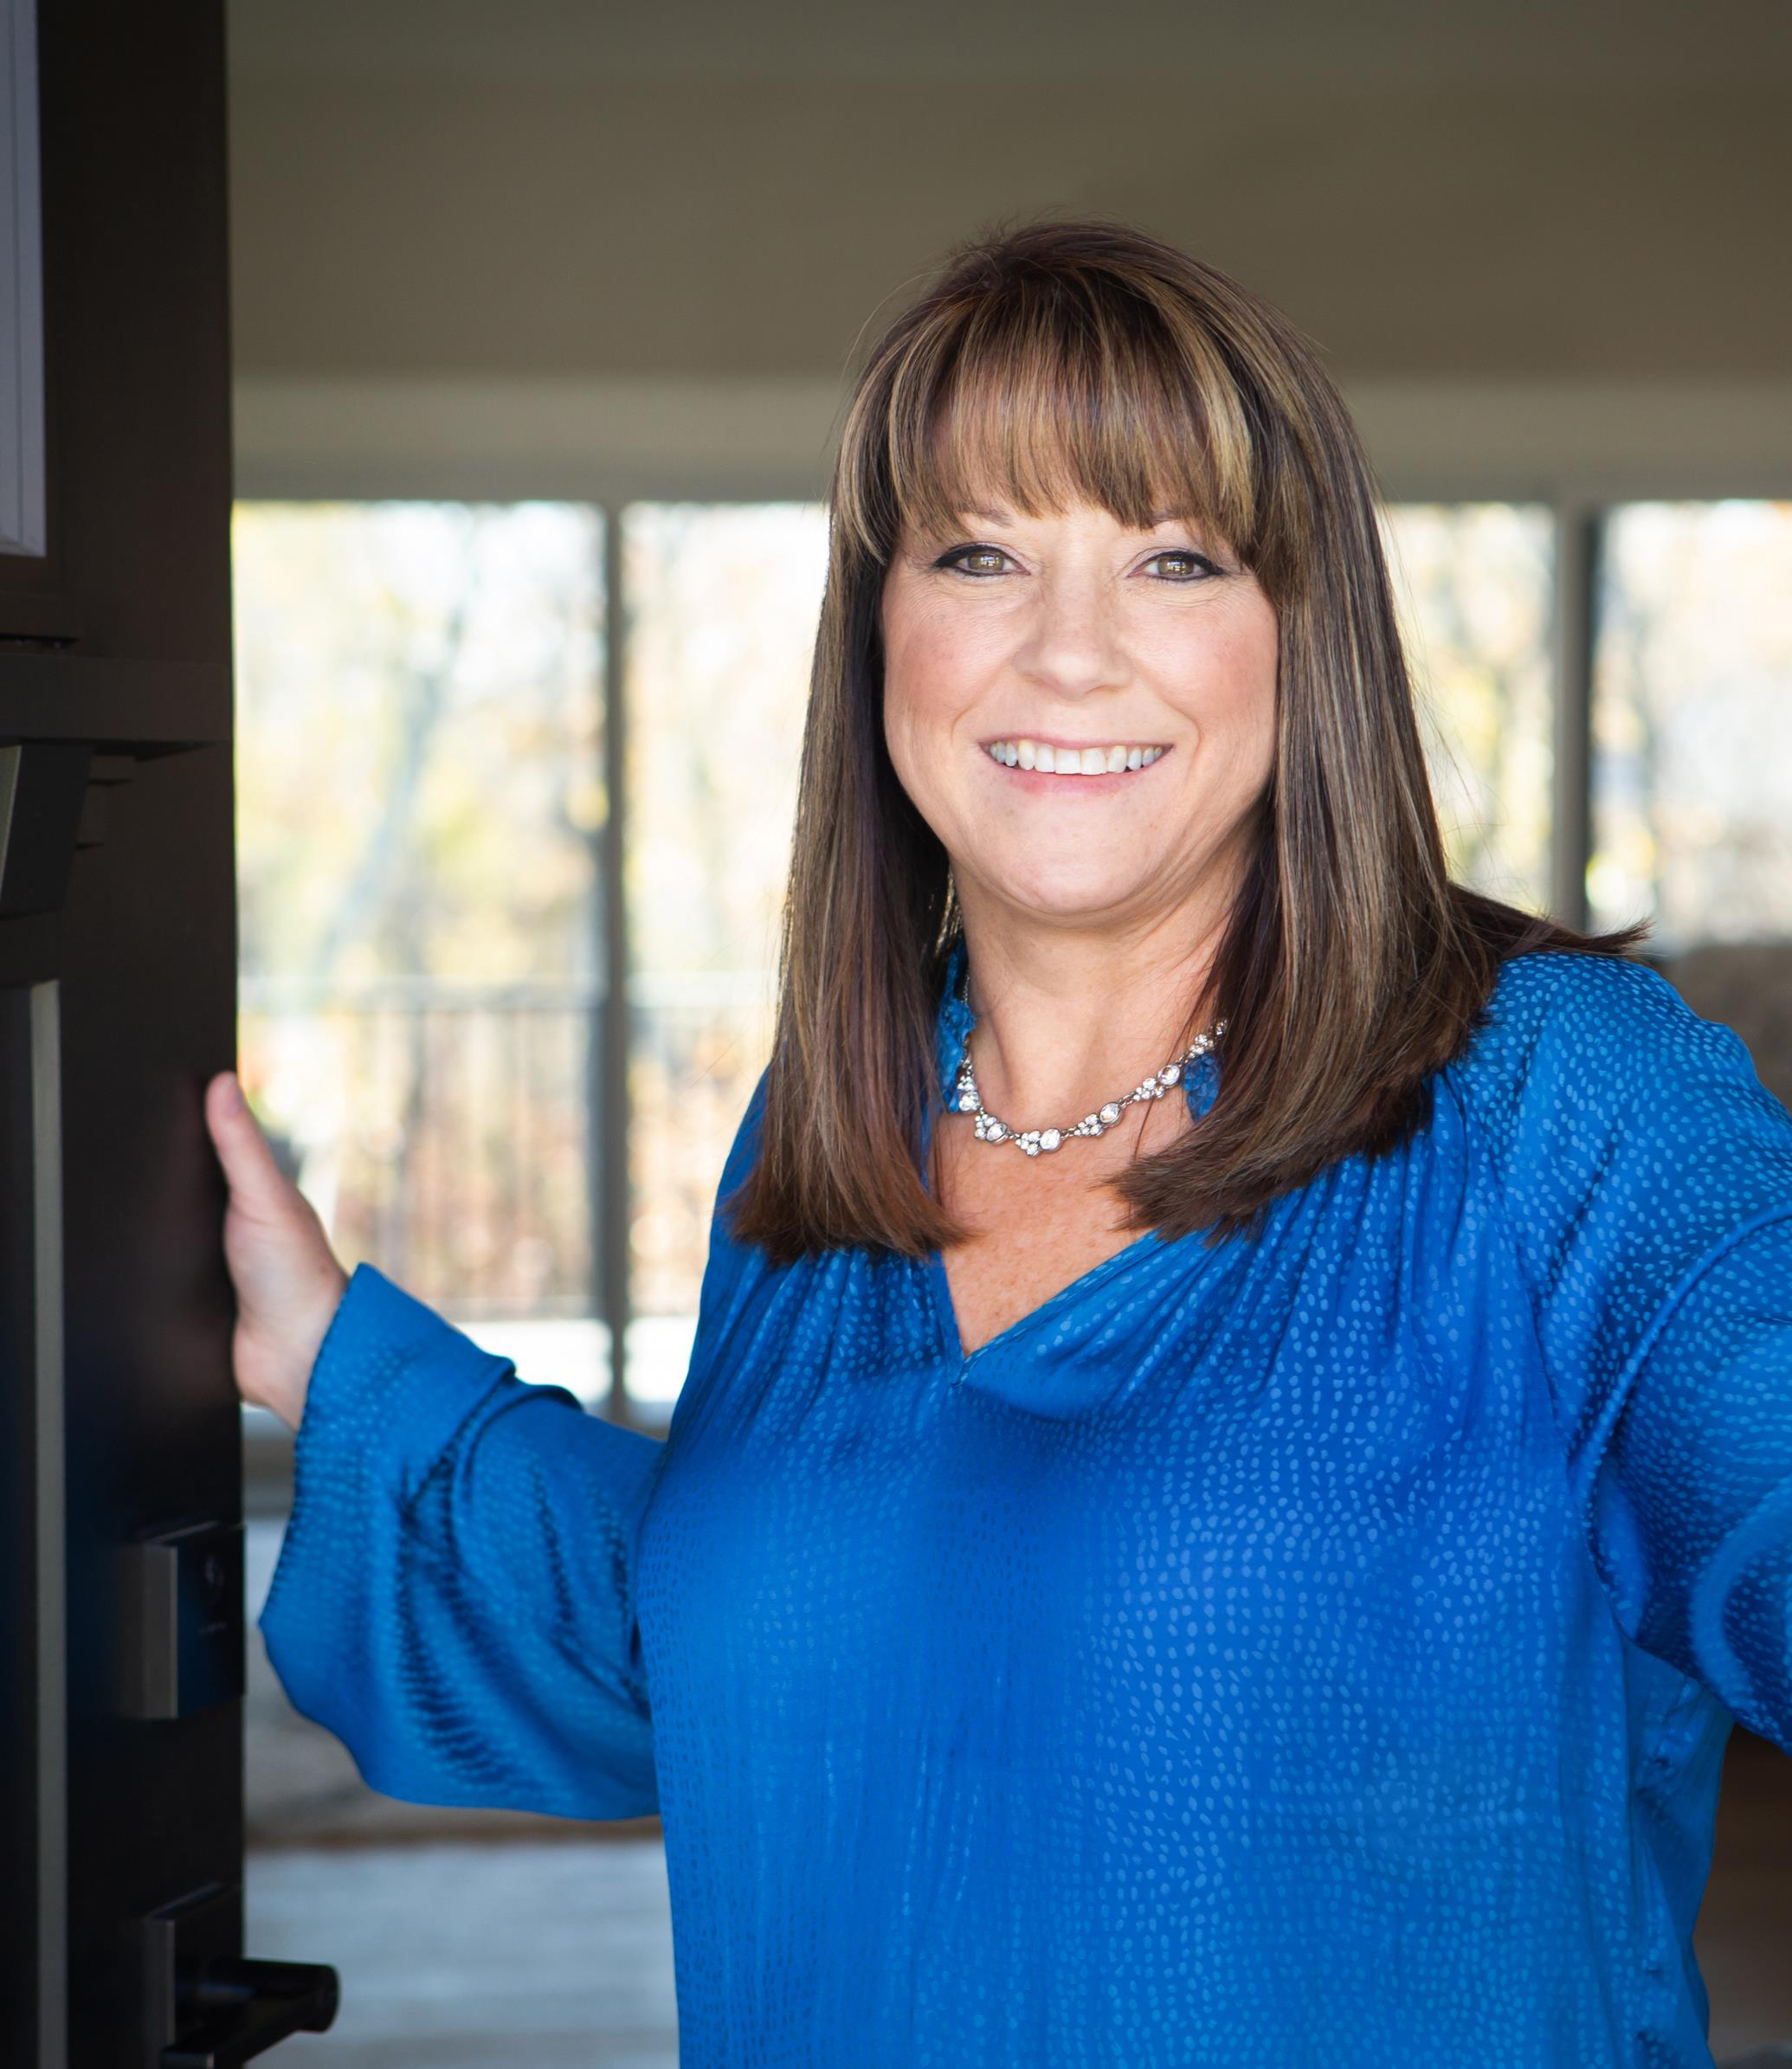 Lisa Lisa is a licensed real estate agent in Lee's Summit MO